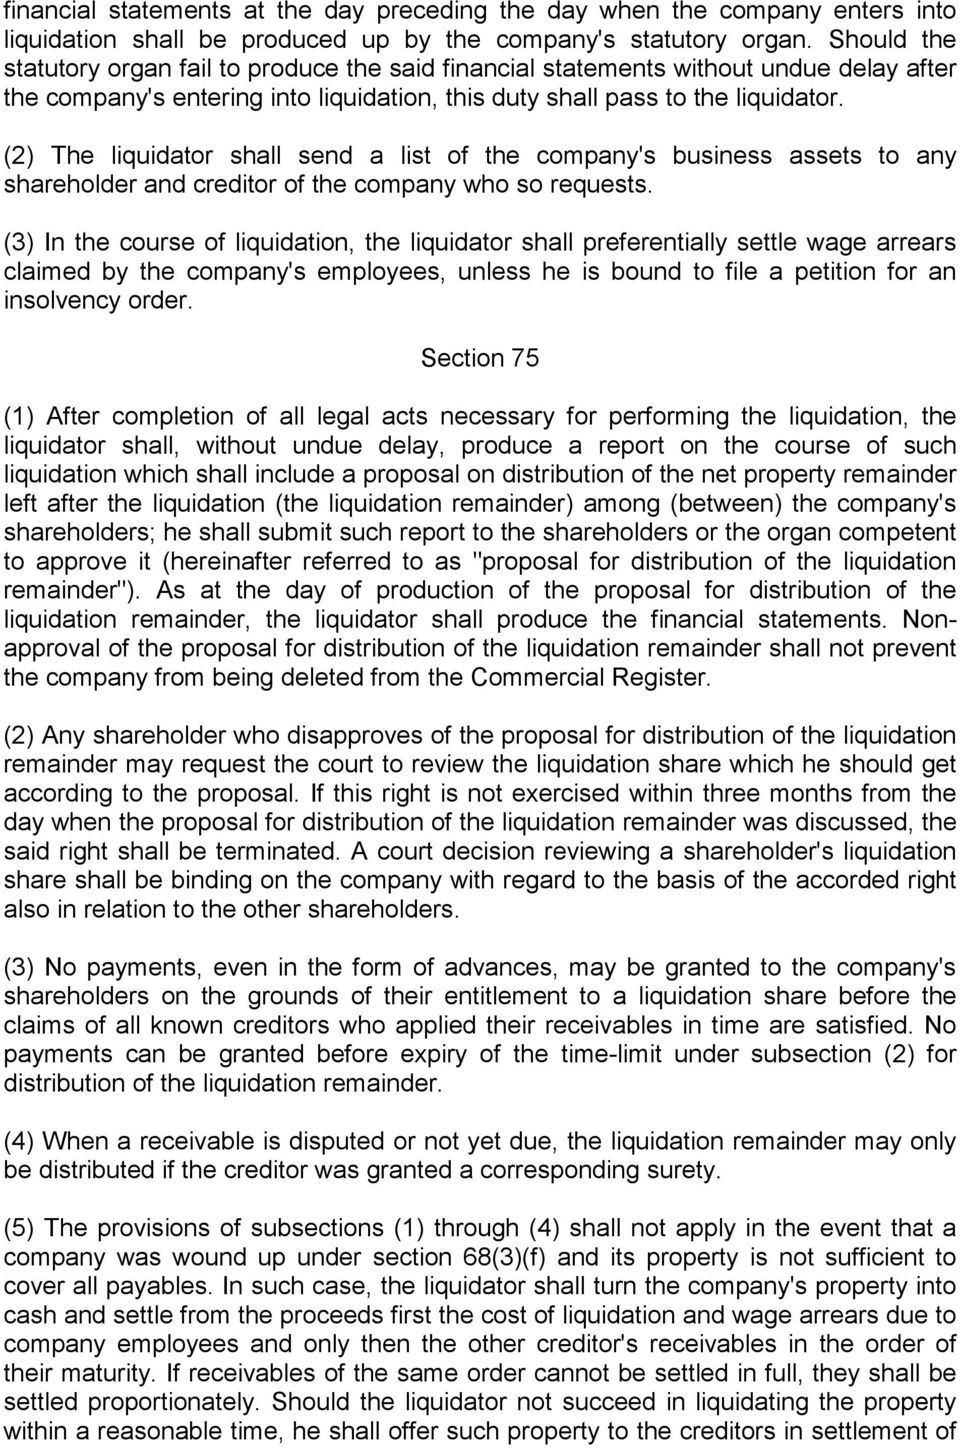 (2) The liquidator shall send a list of the company's business assets to any shareholder and creditor of the company who so requests.